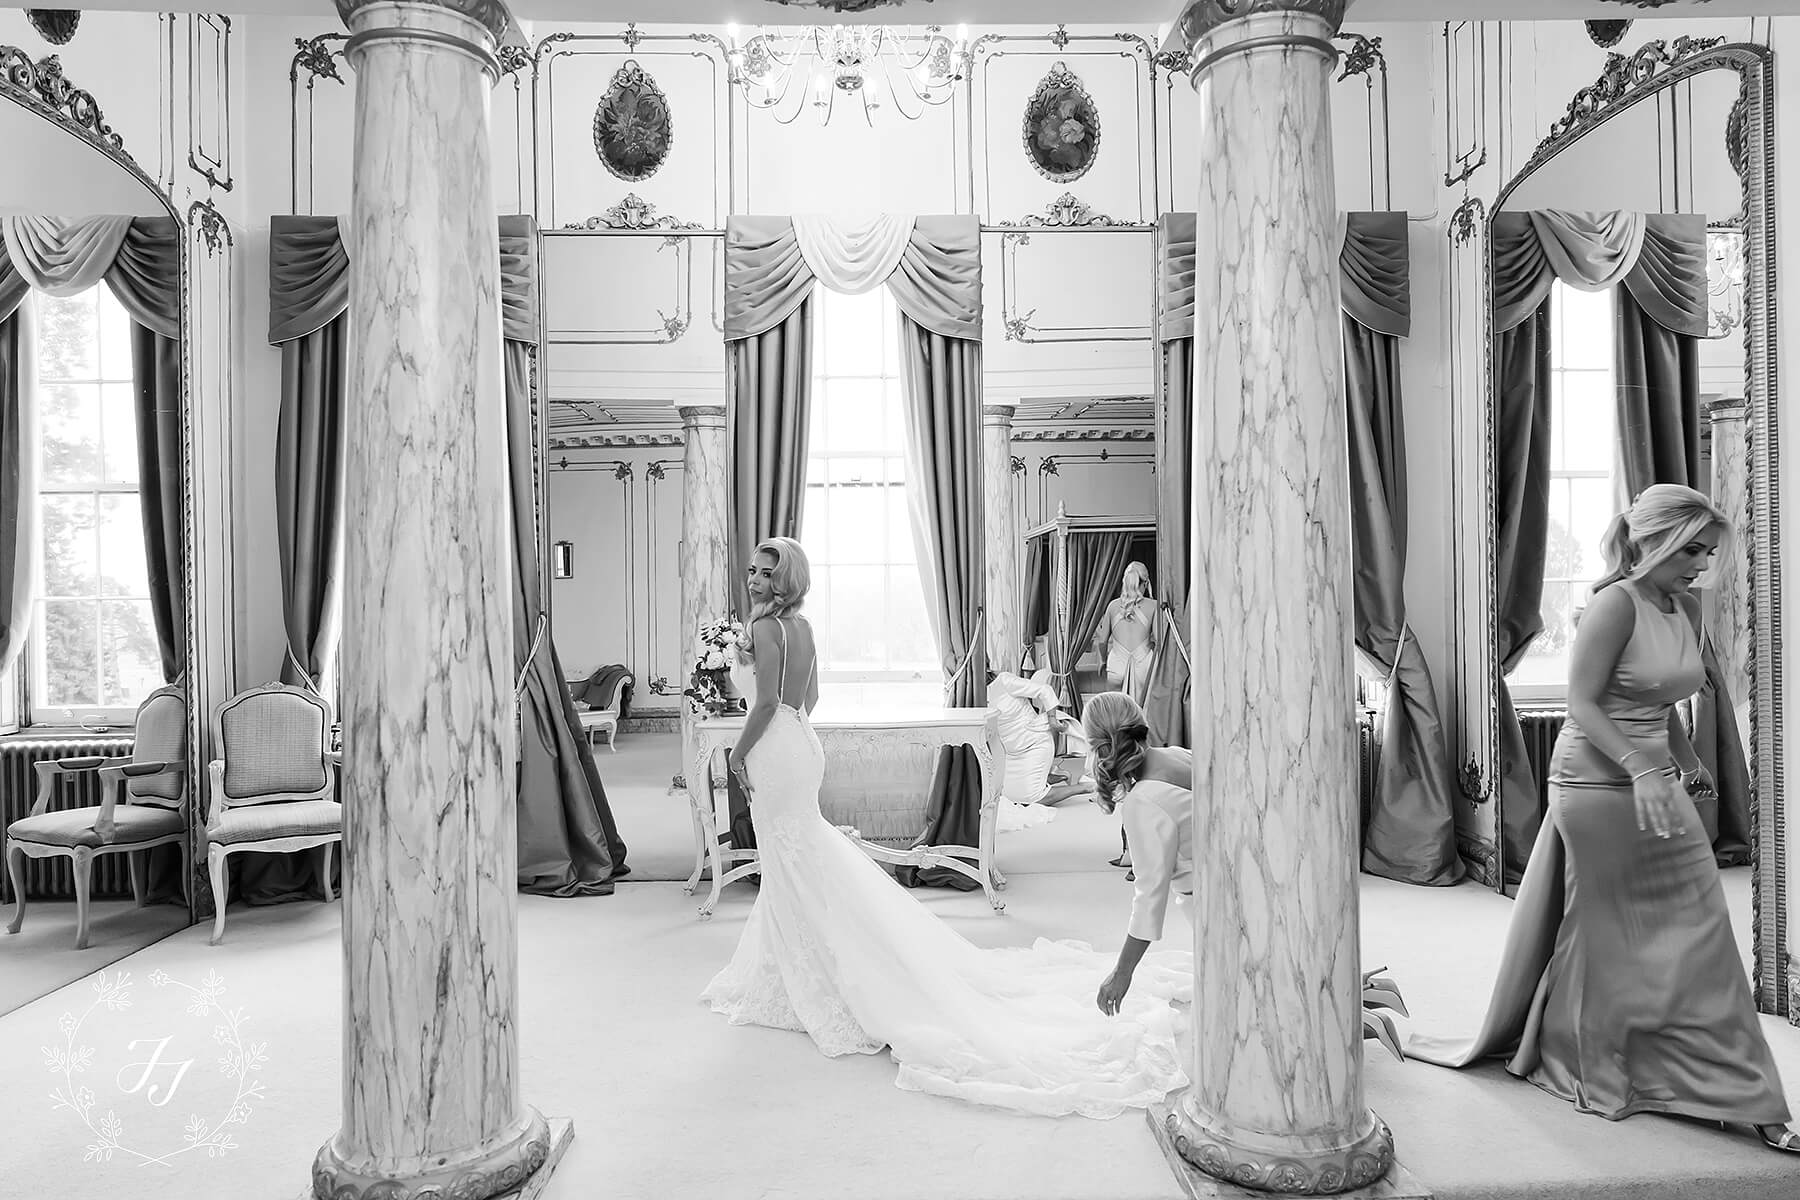 Hollie getting ready for her Christmas wedding at Gosfield Hall in the bridal suite